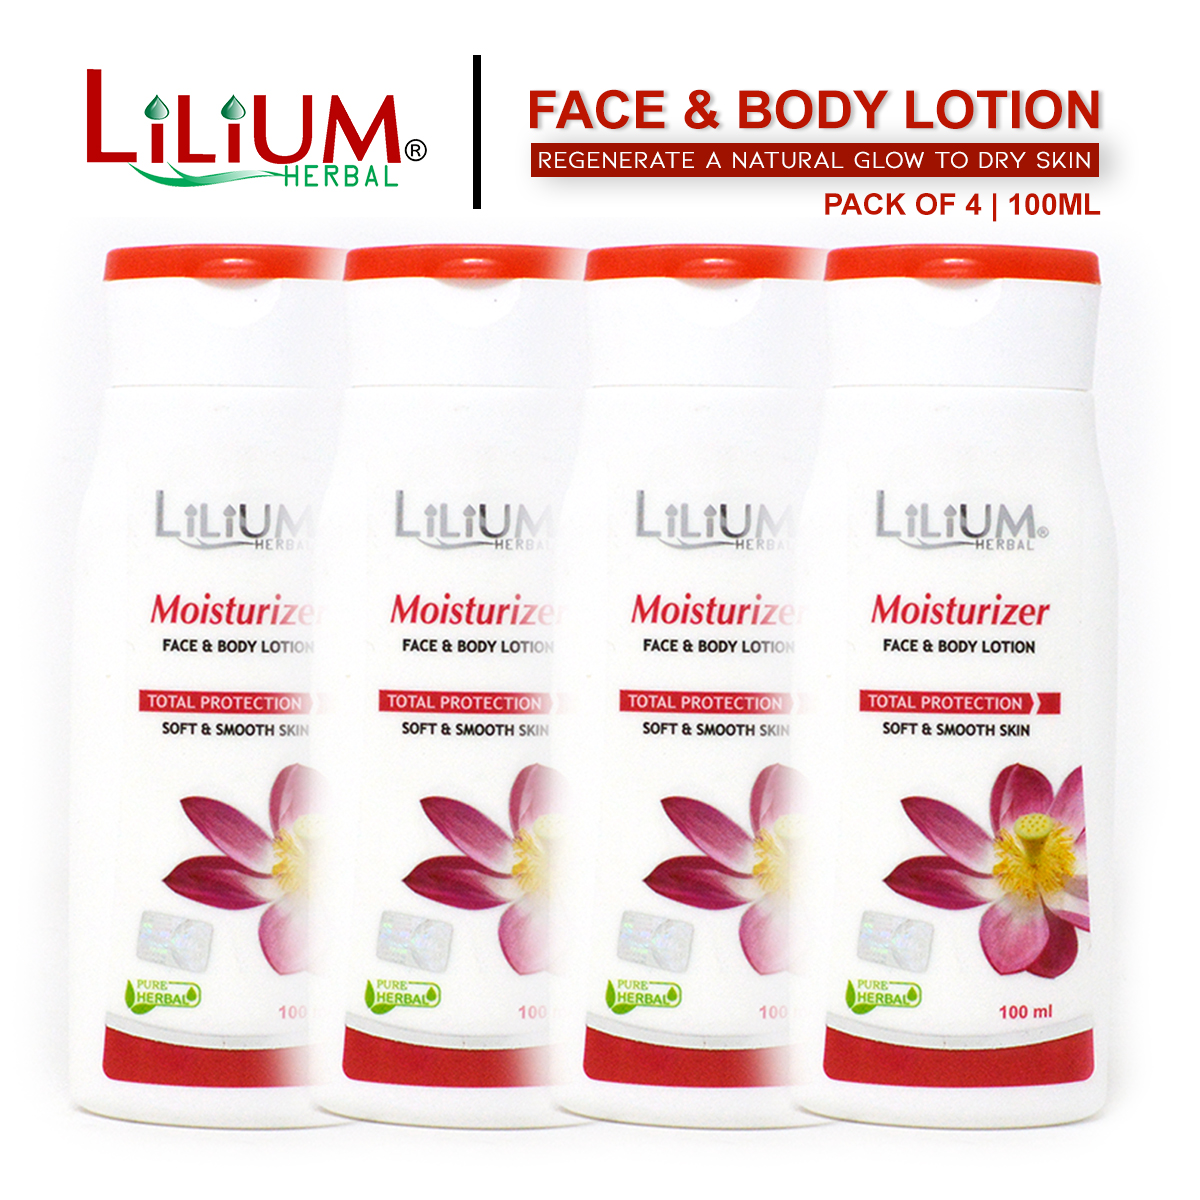 Lilium Herbal Regular Moisturizer Face & Body Lotion 100ml Pack of 4